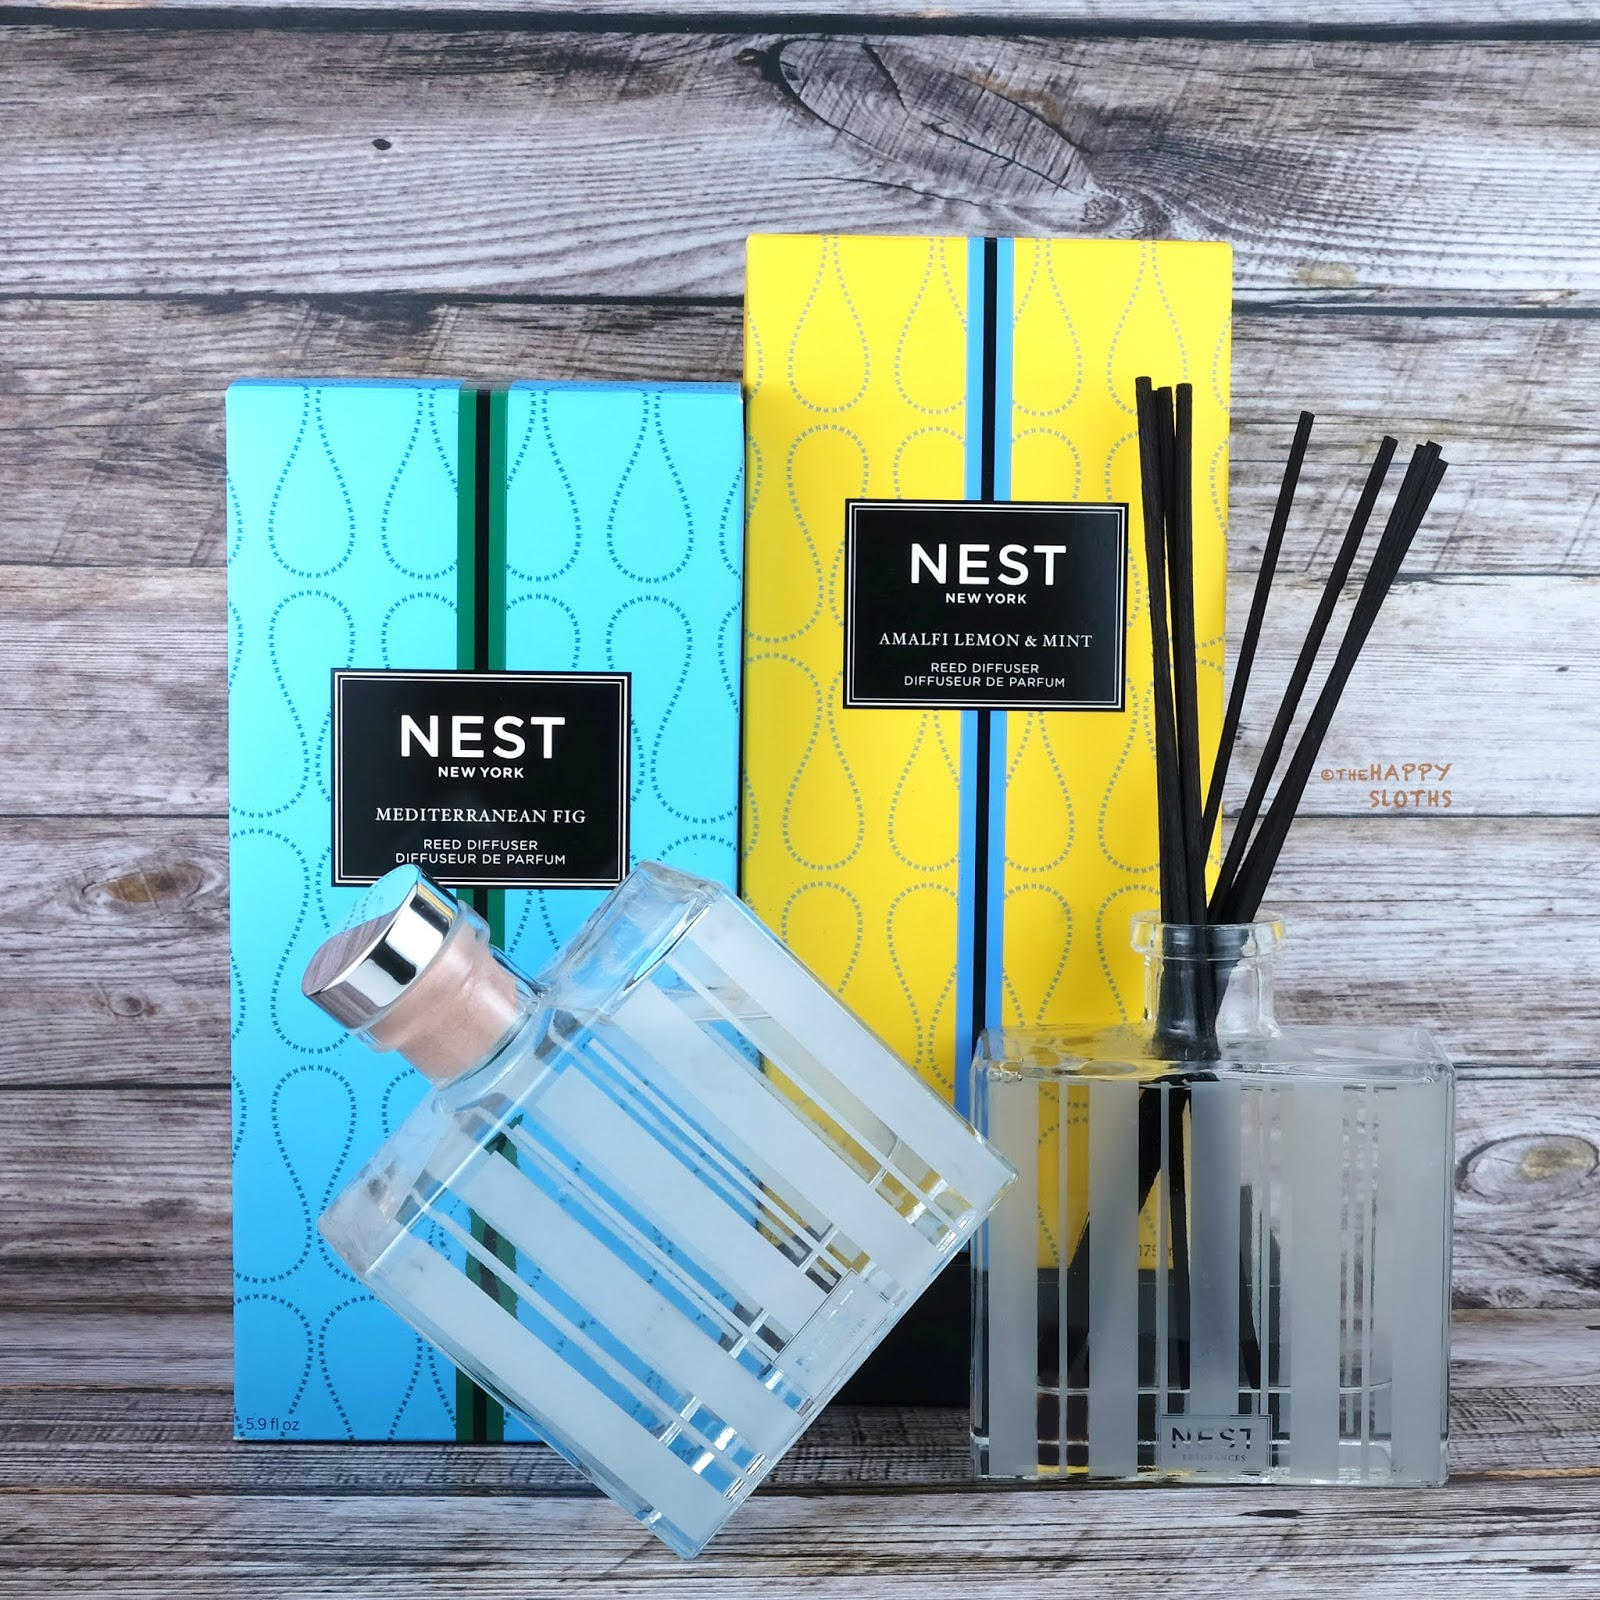 NEST Fragrances | Amalfi Lemon & Mint Candle and Mediterranean Fig Reed Diffuser: Review